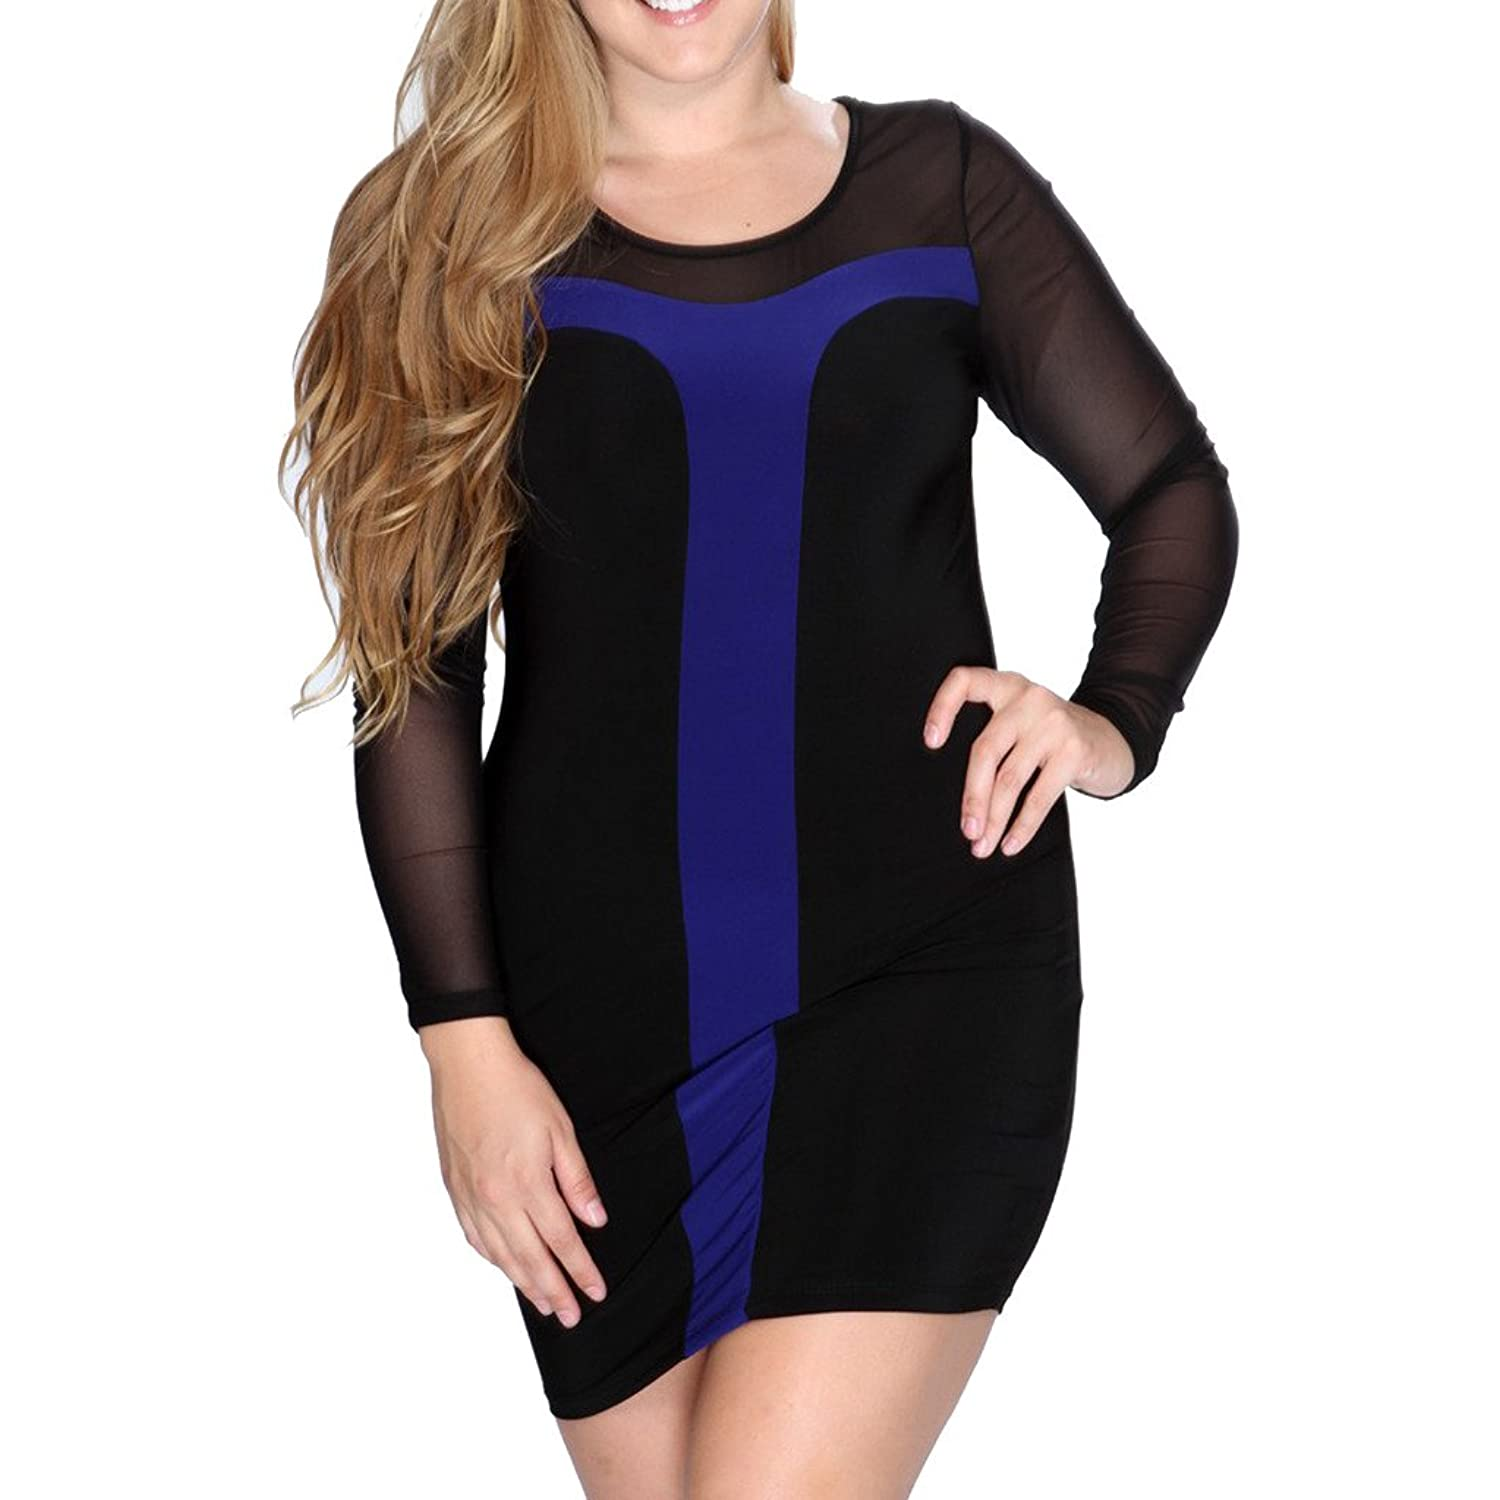 EGELBEL Women's Mesh Plus Size Long Sleeves Party Bodycon Dress